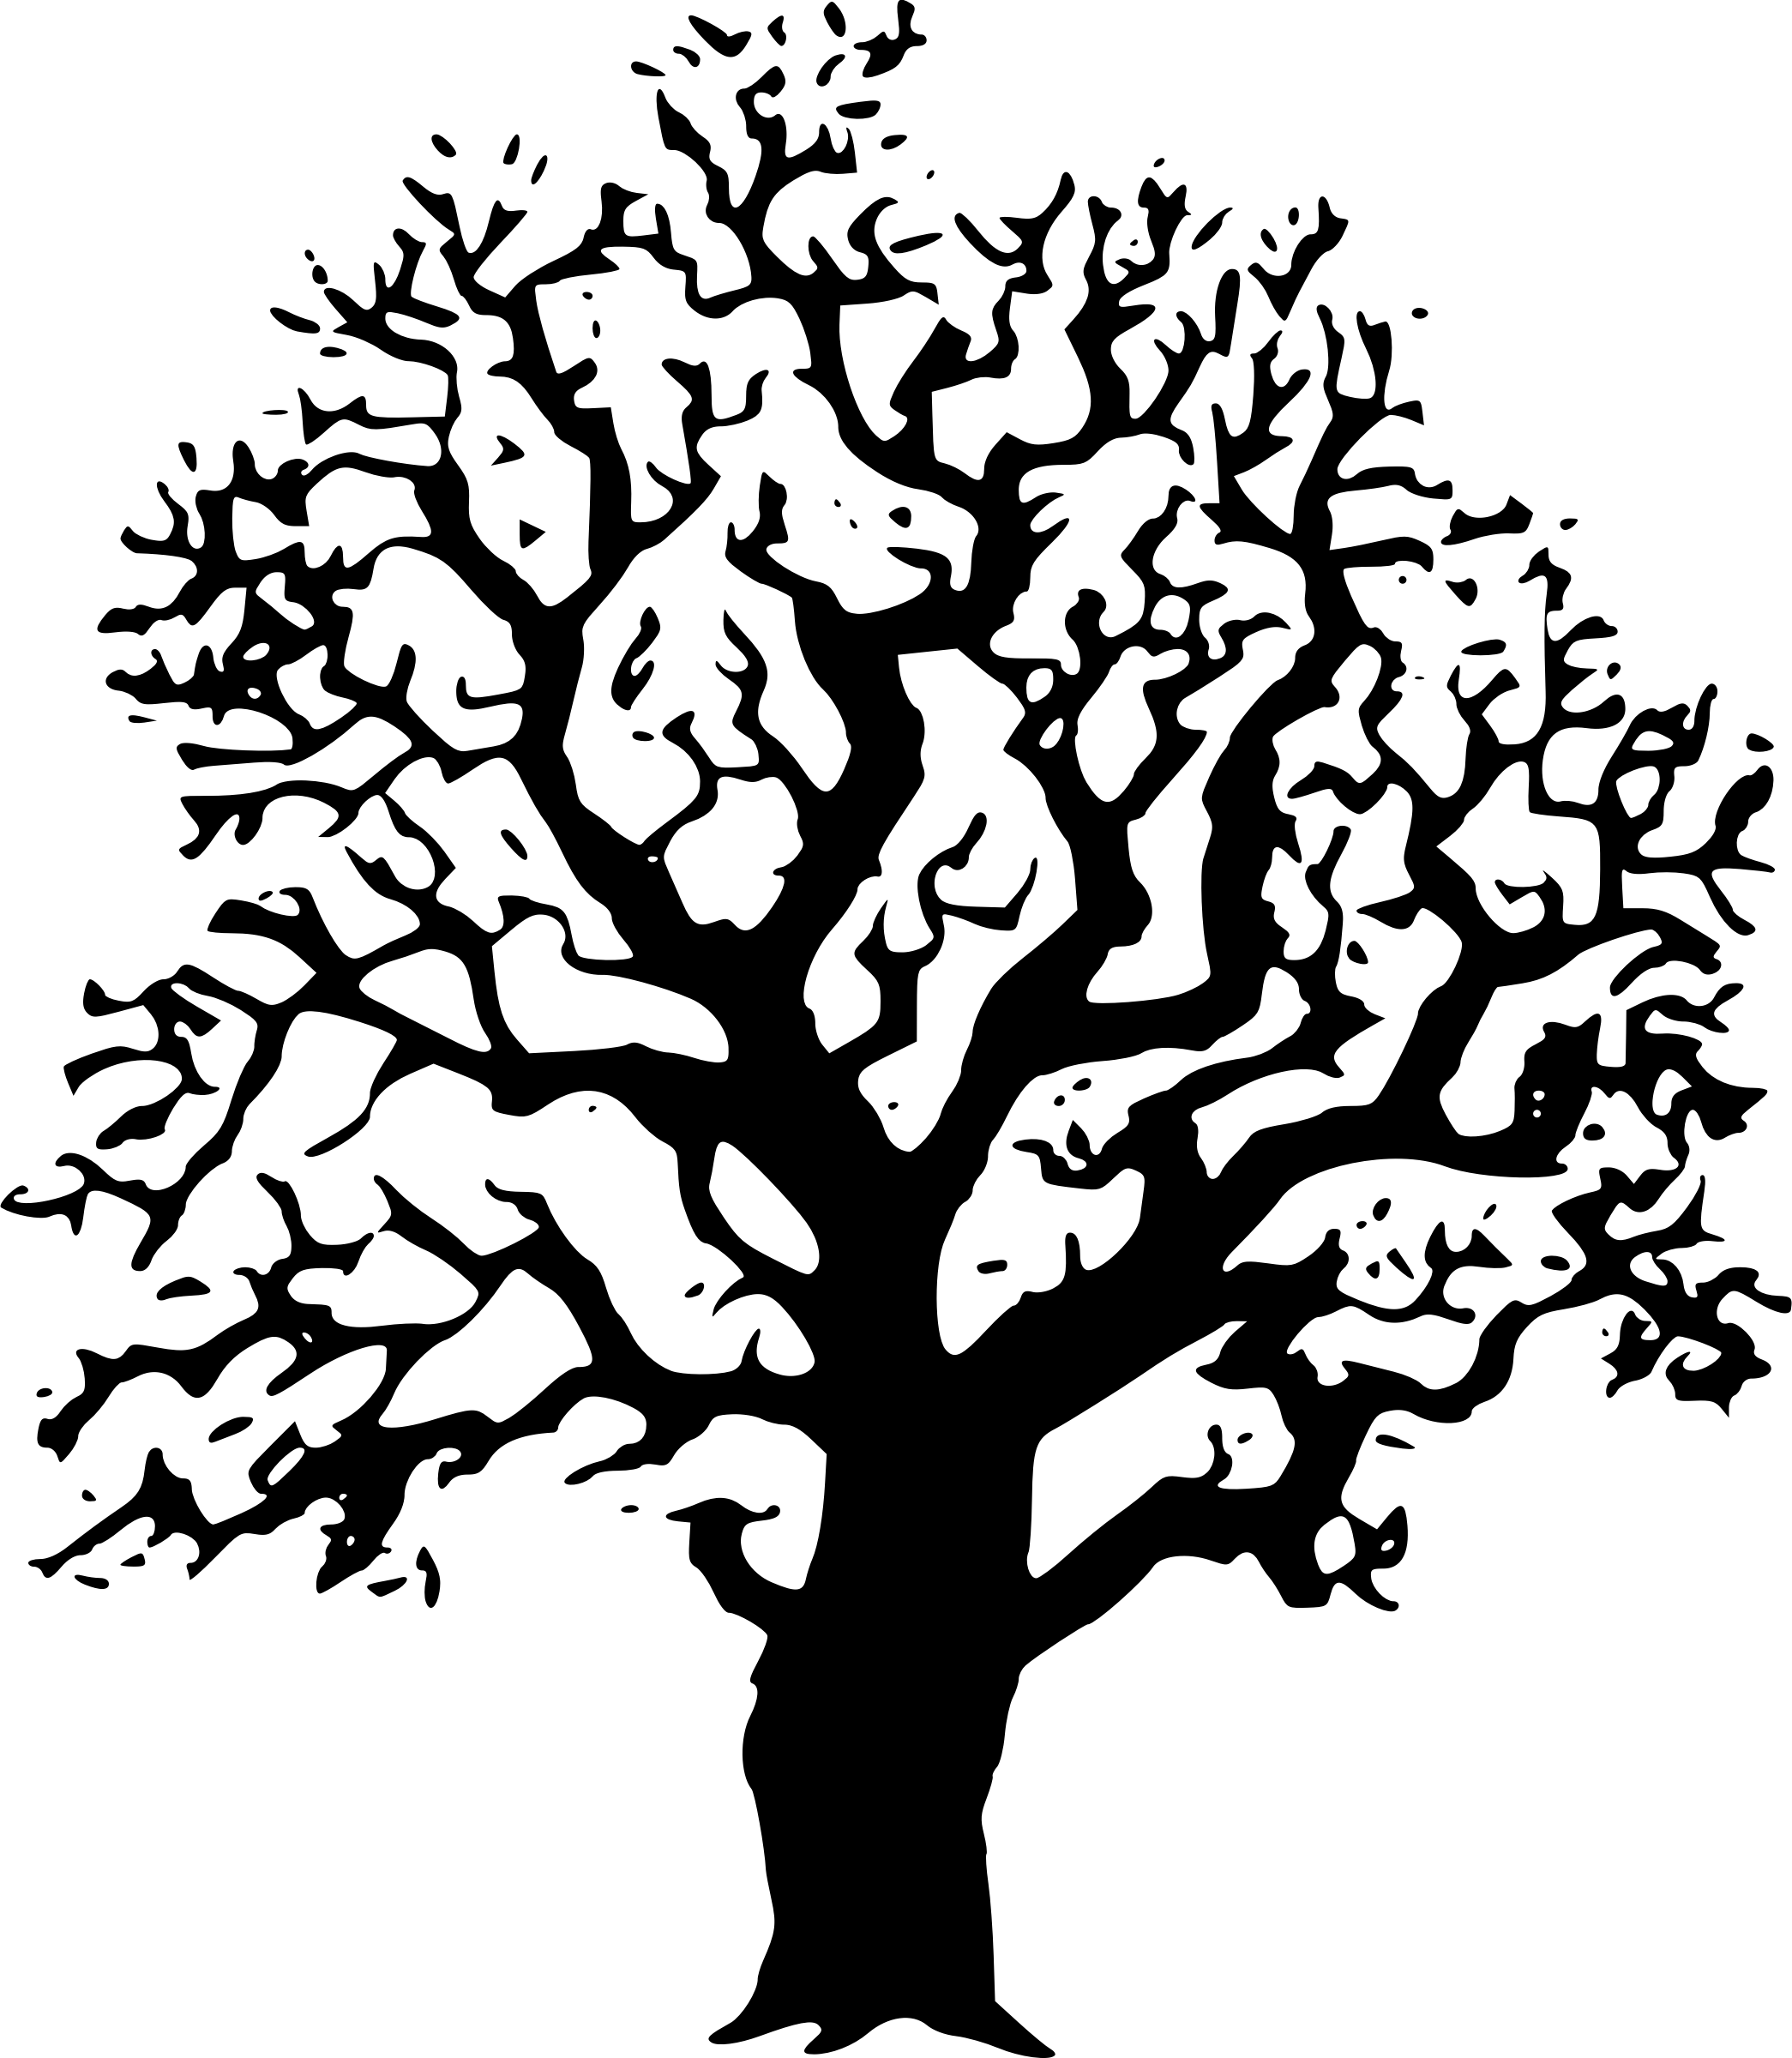 Oaktree Clipart Tree Clipart Black And White